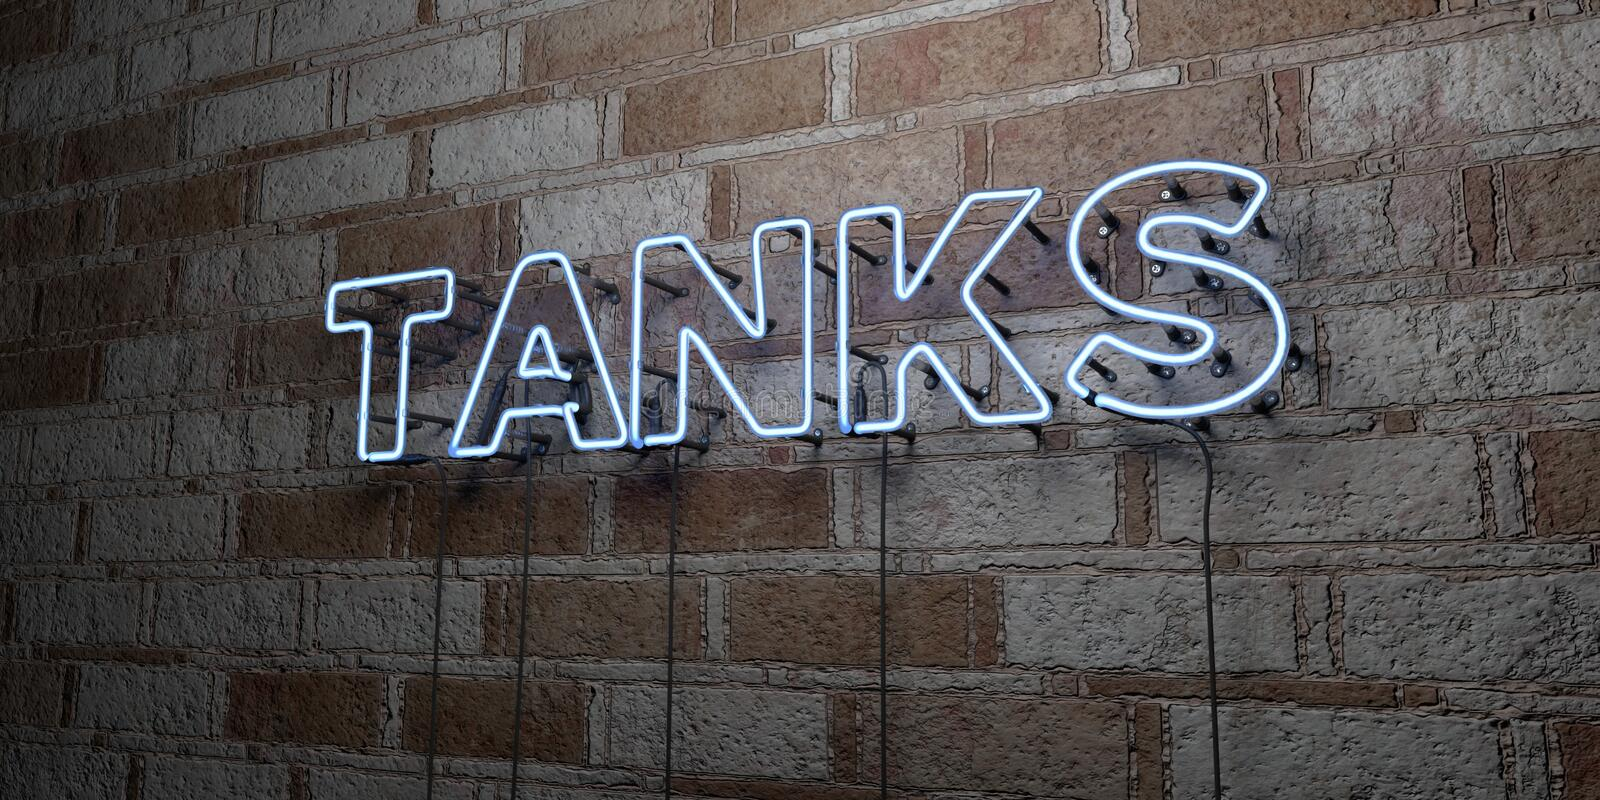 TANKS - Glowing Neon Sign on stonework wall - 3D rendered royalty free stock illustration royalty free illustration